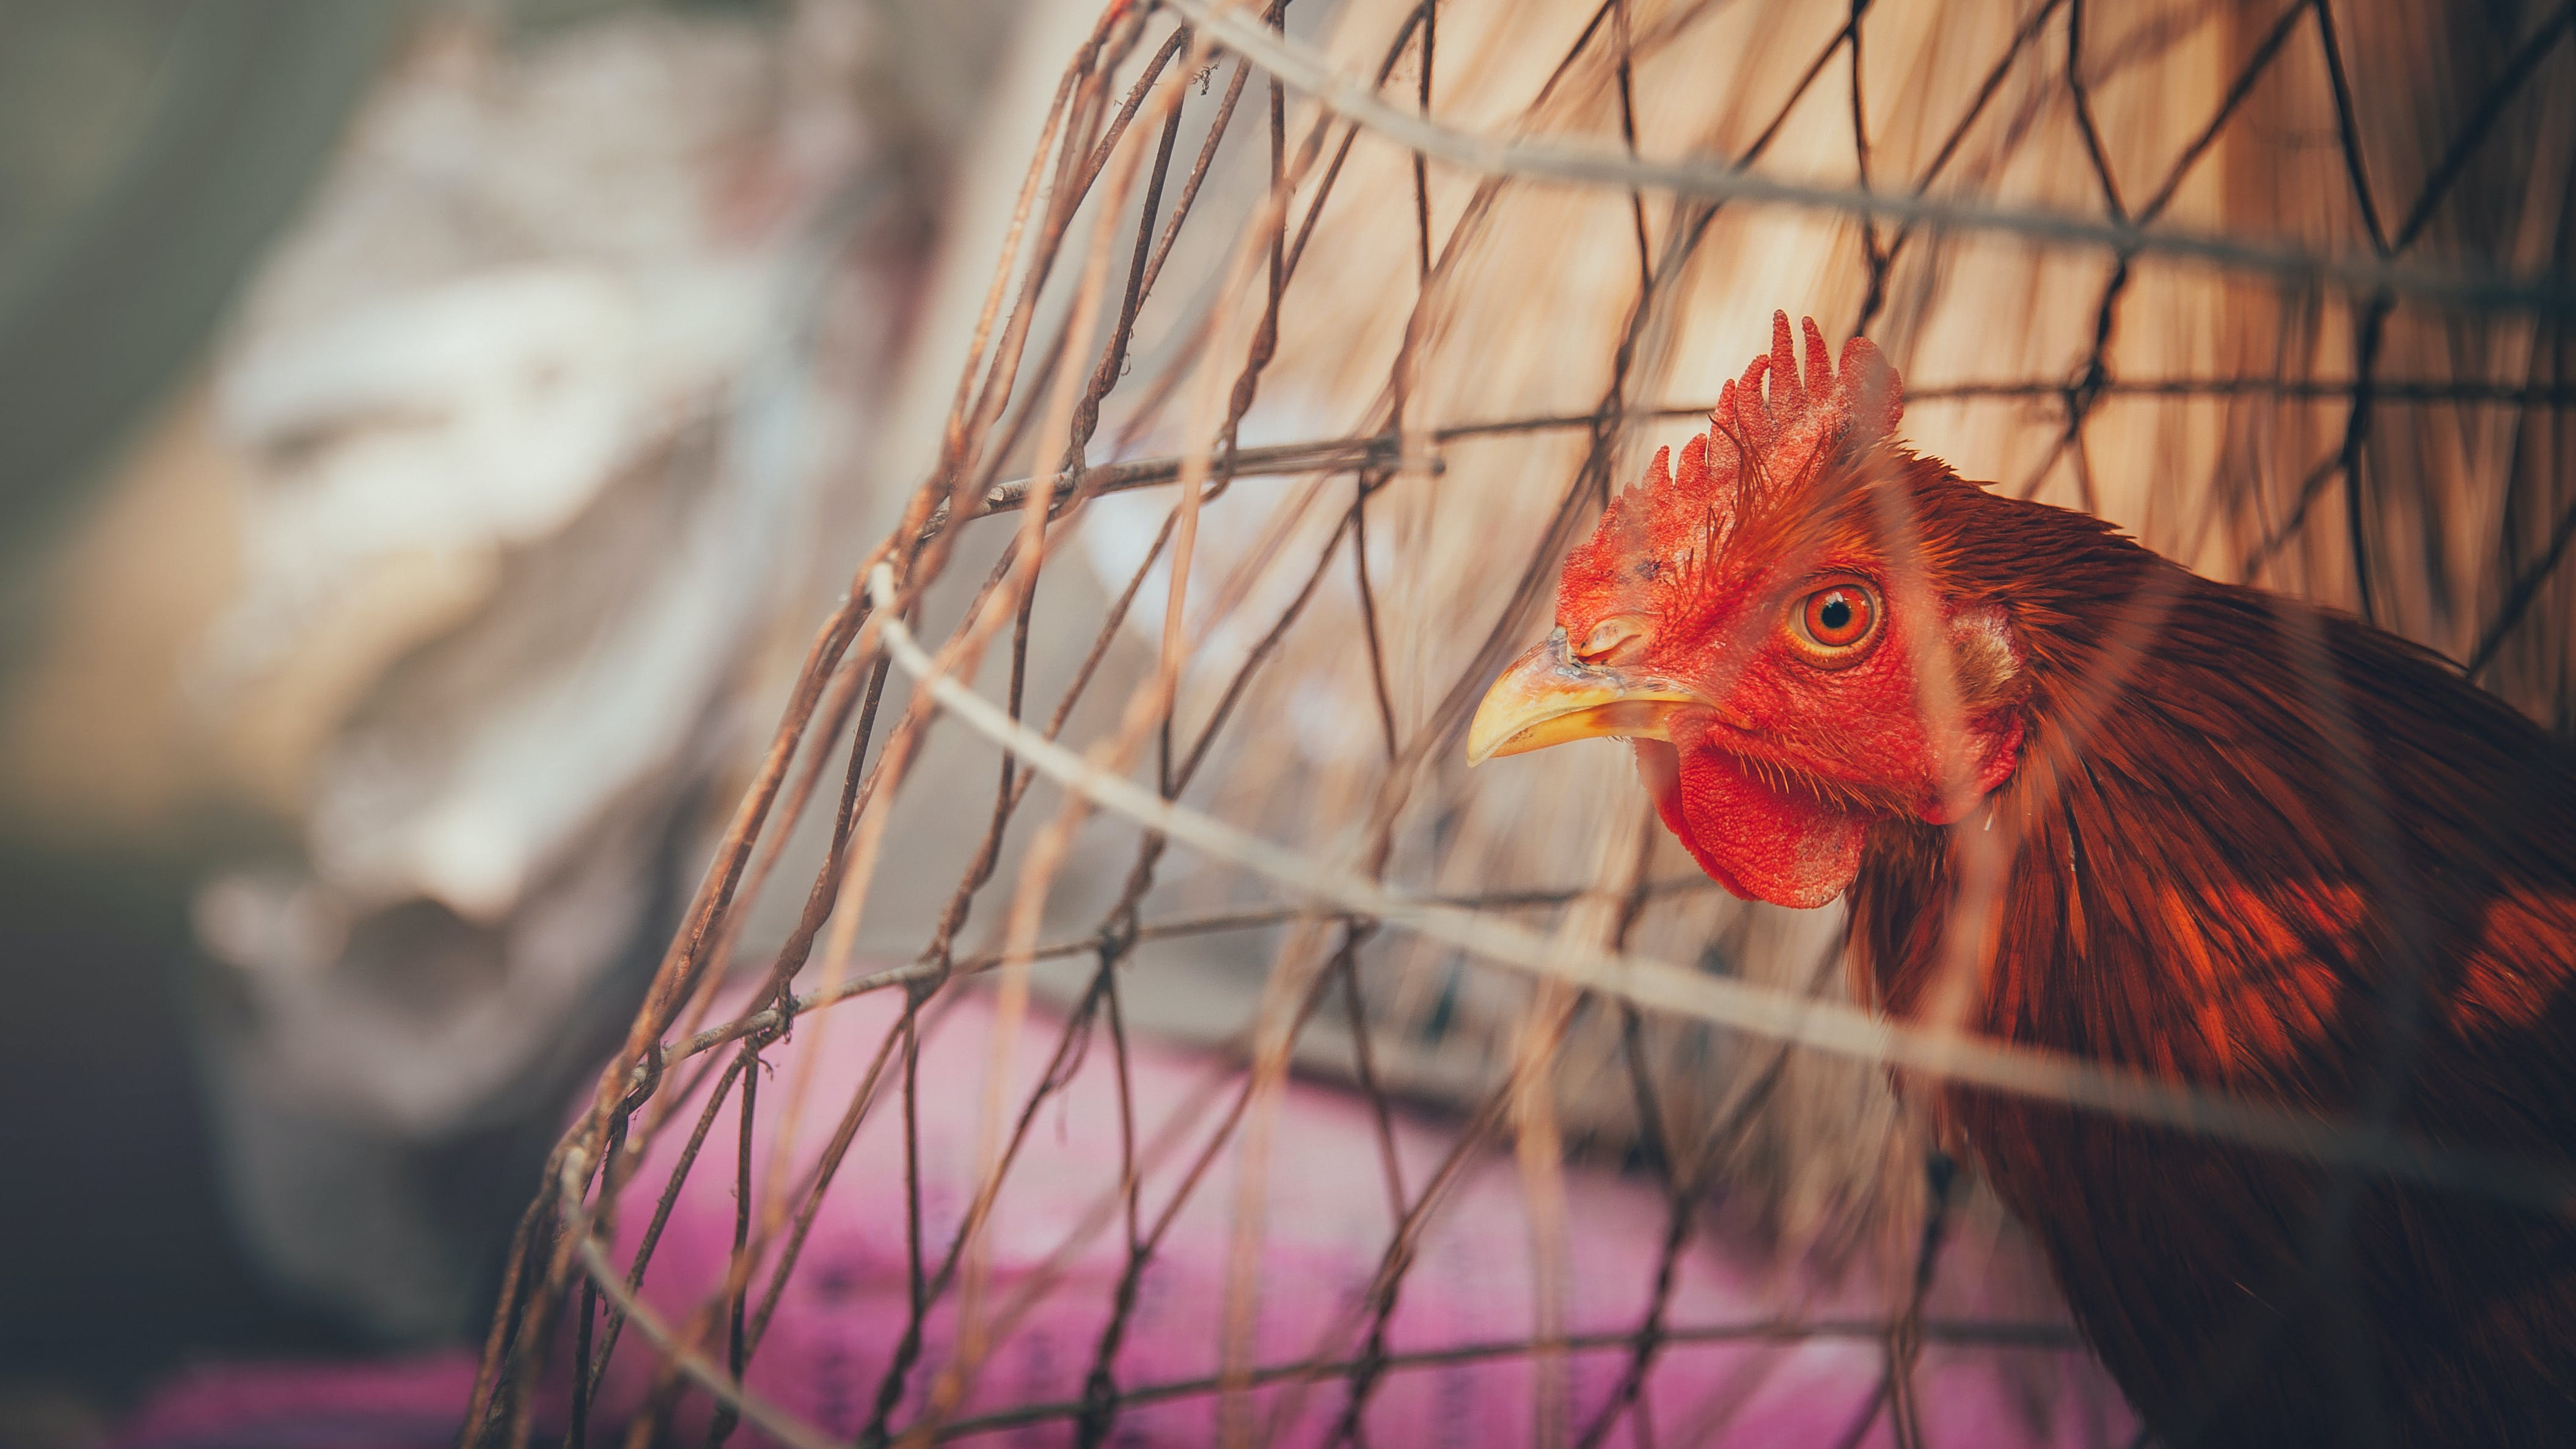 Red Rooster on Brown Wooden Cage